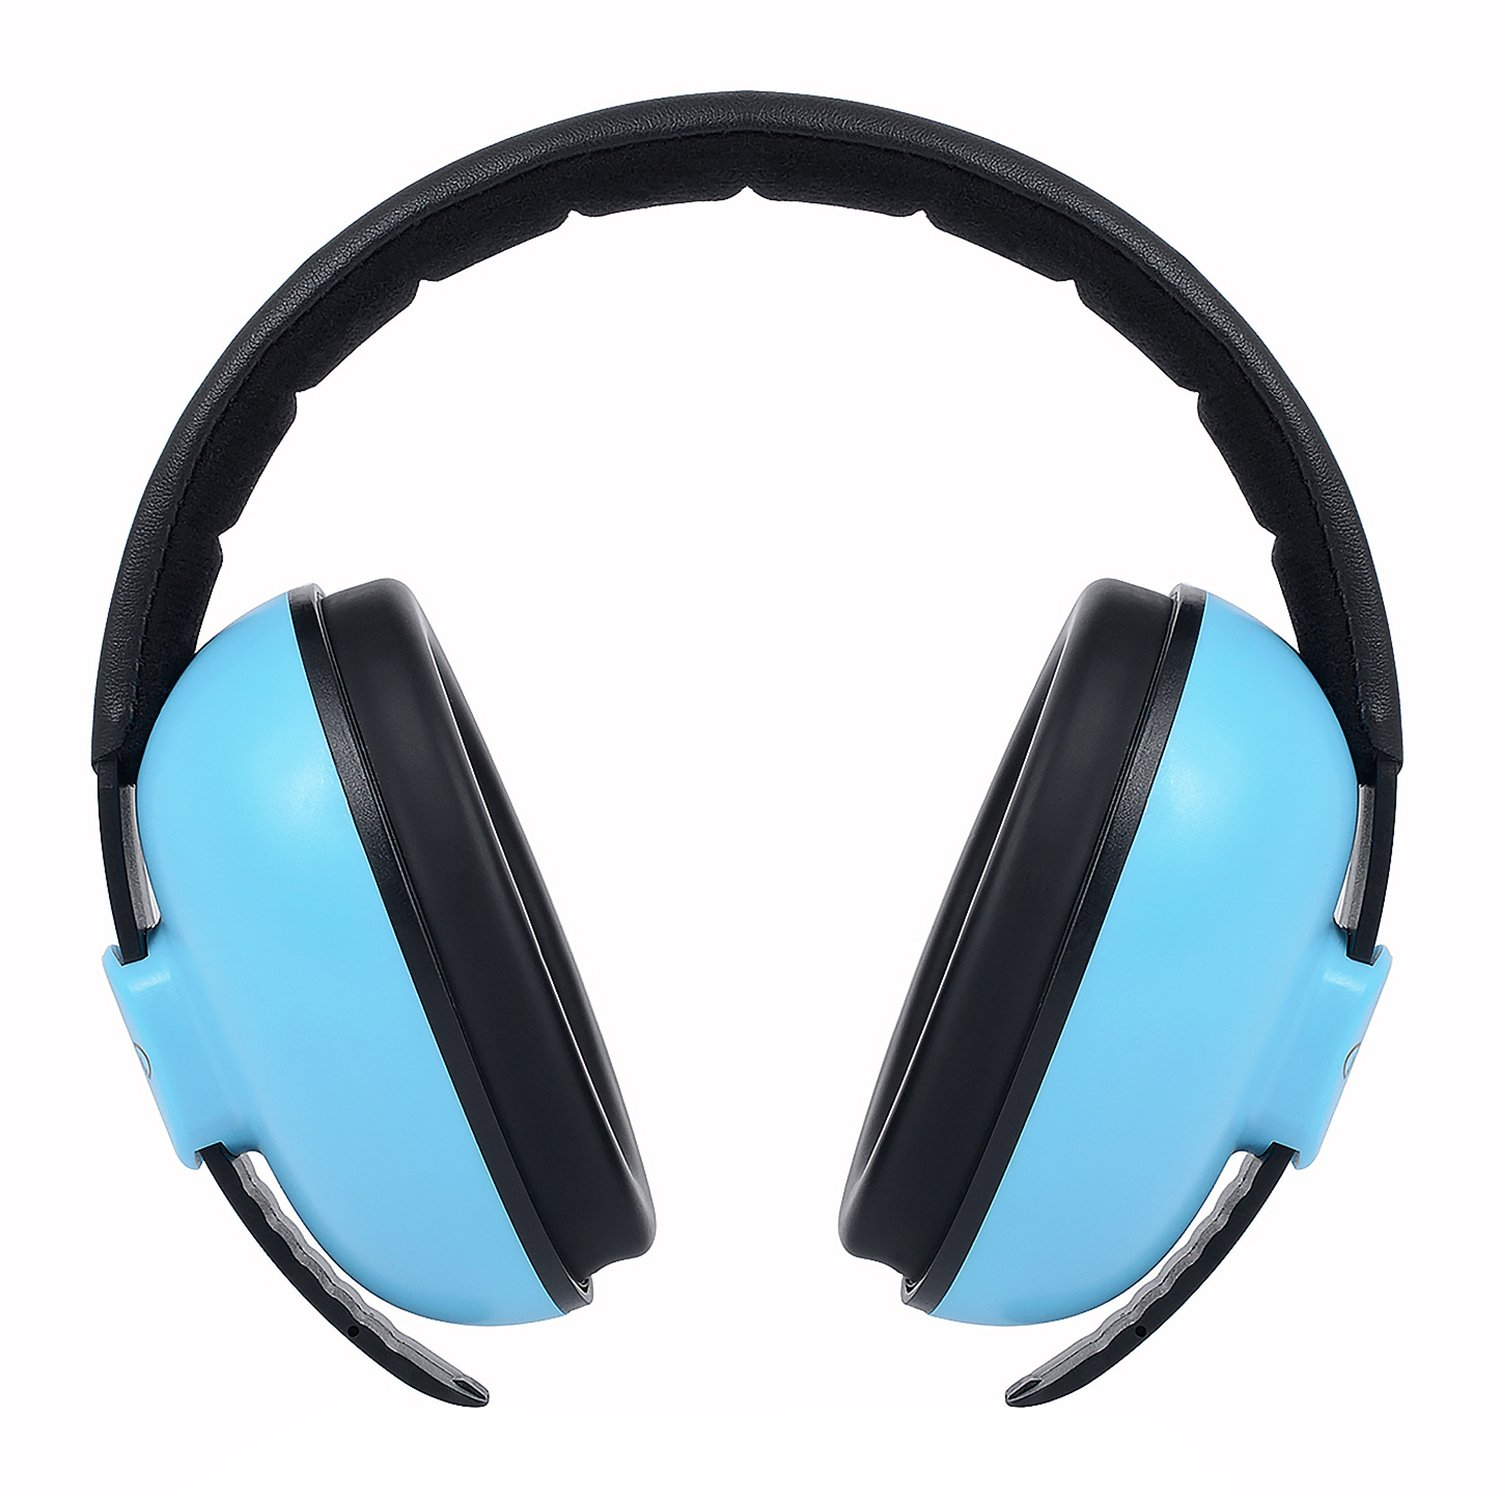 Baby Headphones Infant Hearing Protection - Ages 0-2+Years - Noise Cancelling Headphones for Babies Toddlers - Soft & Comfortable - Baby Ear Protection Earmuffs